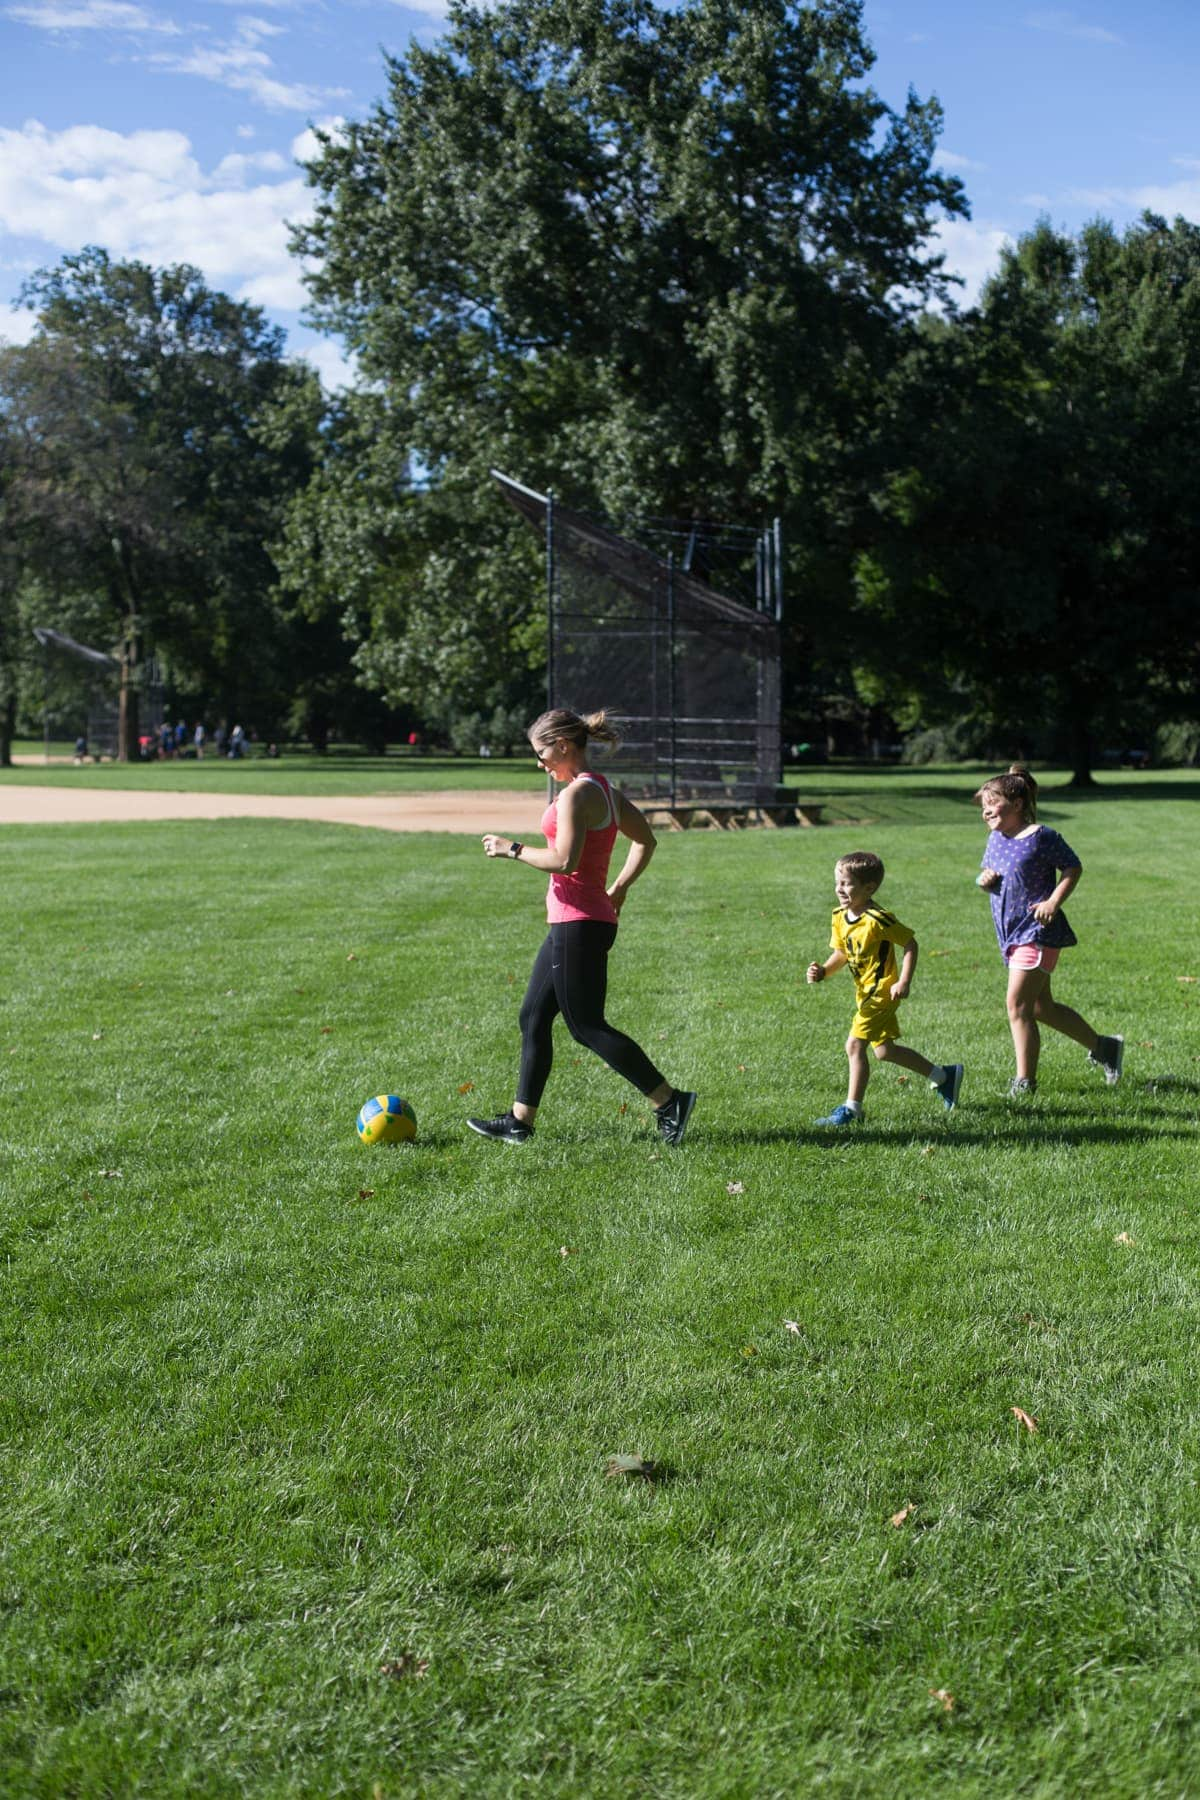 Lauren and the kids playing soccer